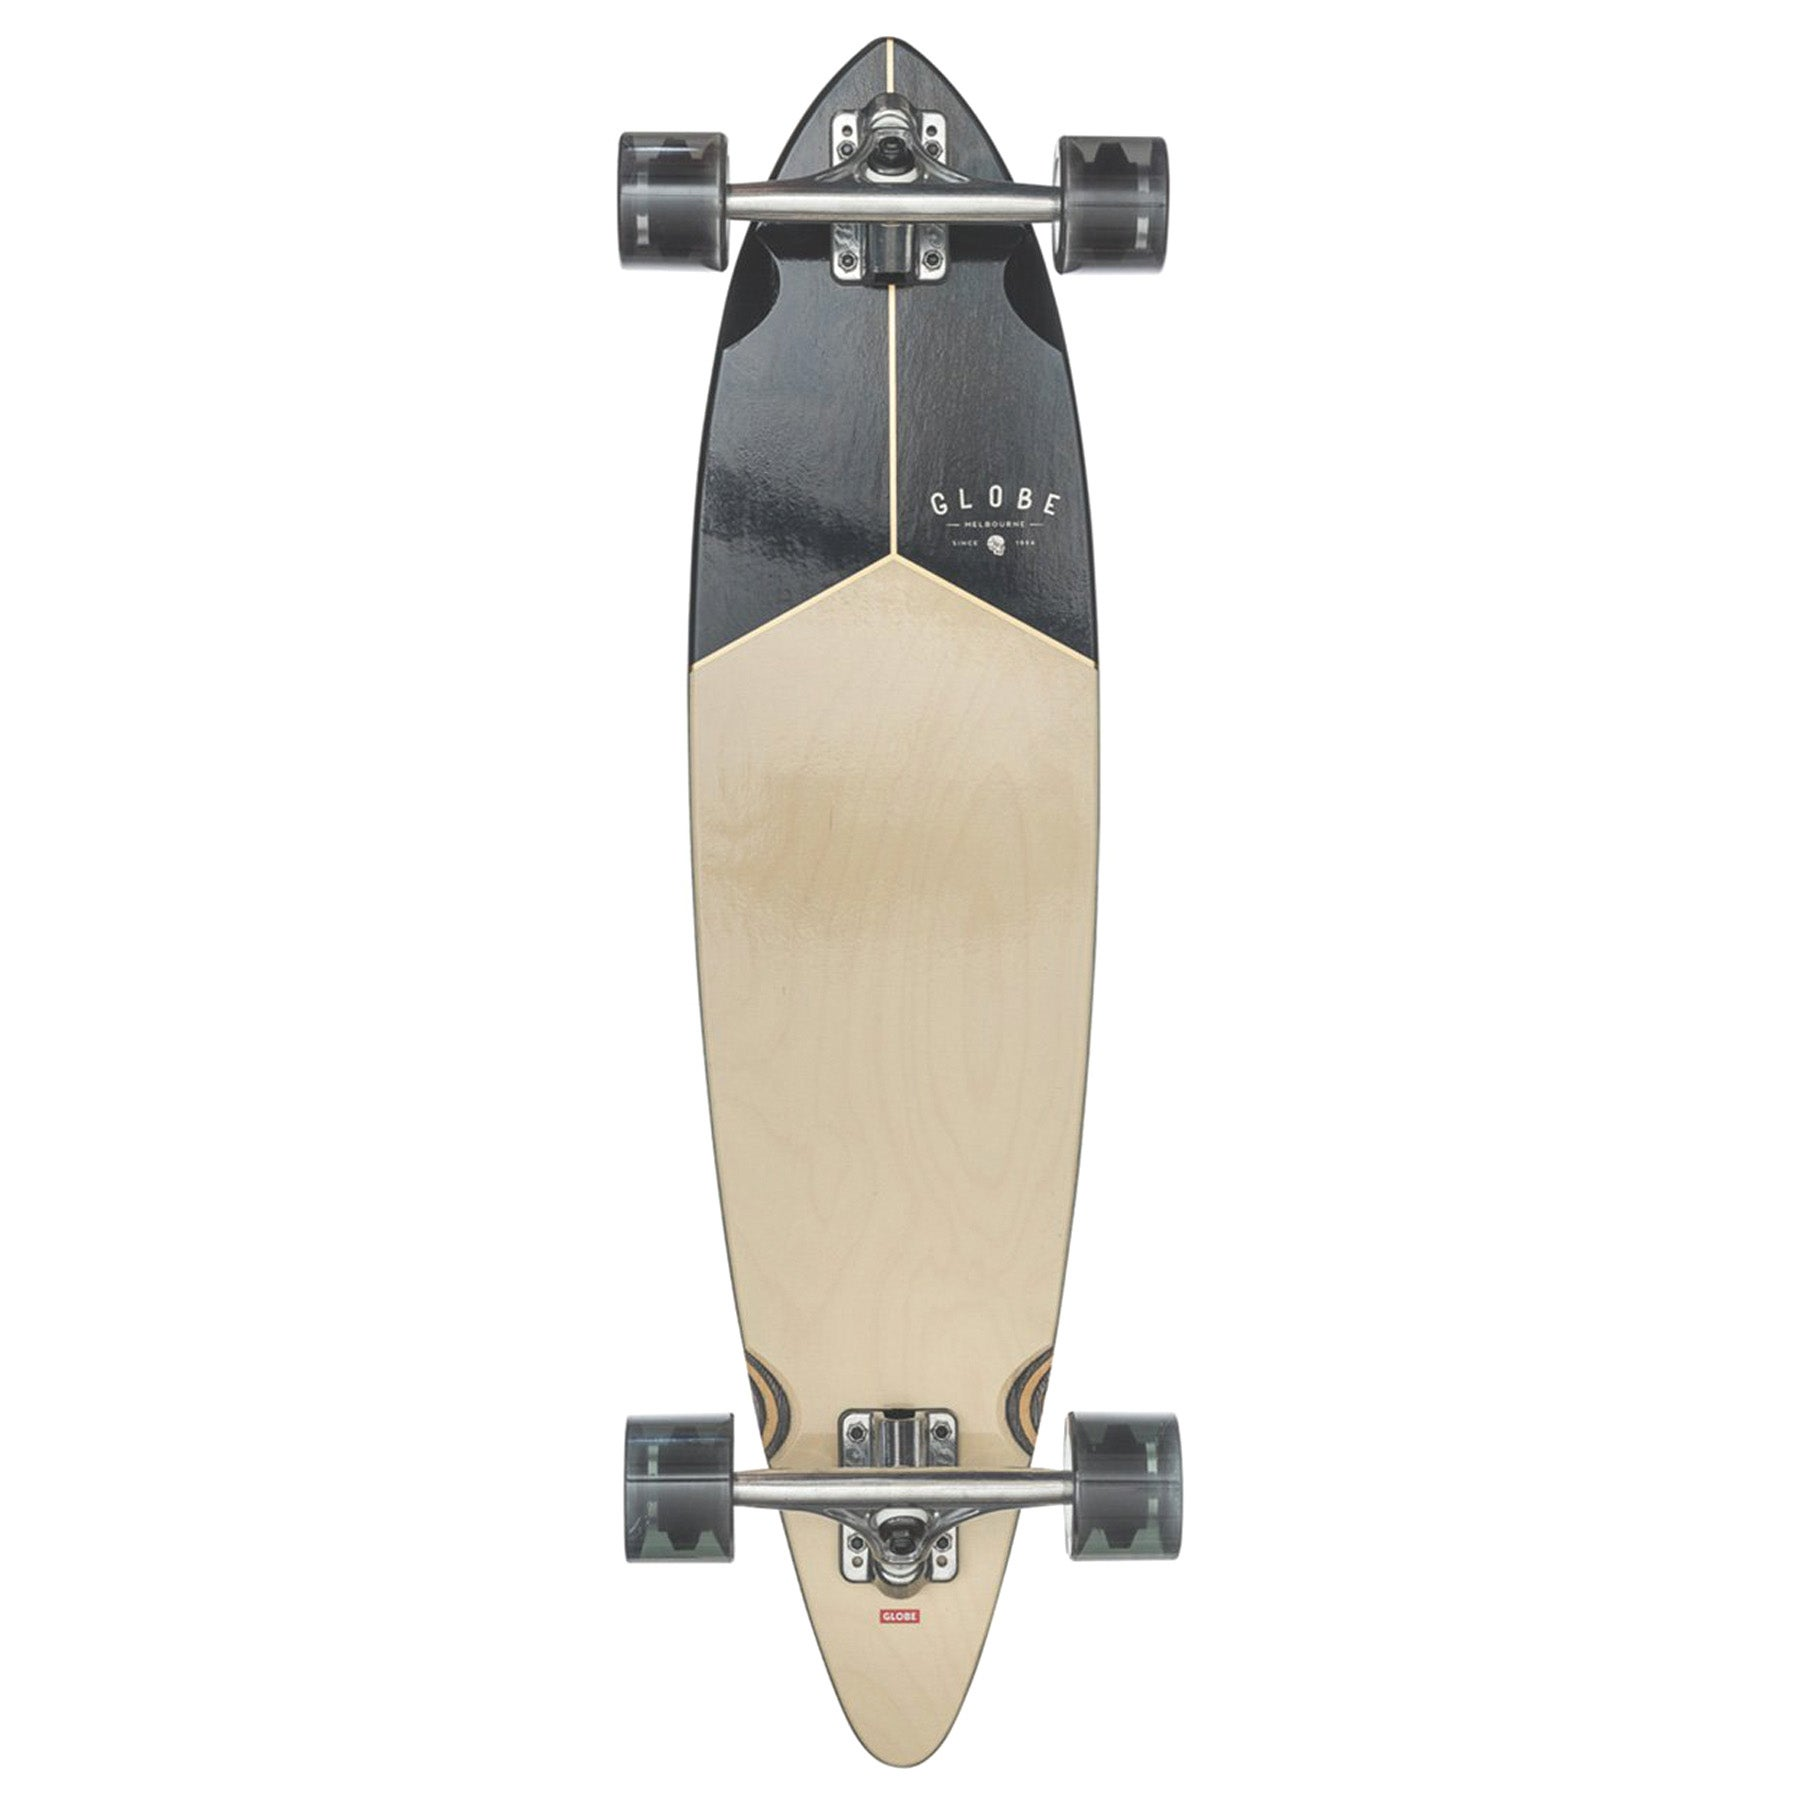 Globe Pintail Moonlighting Lit 34 Inch Longboard